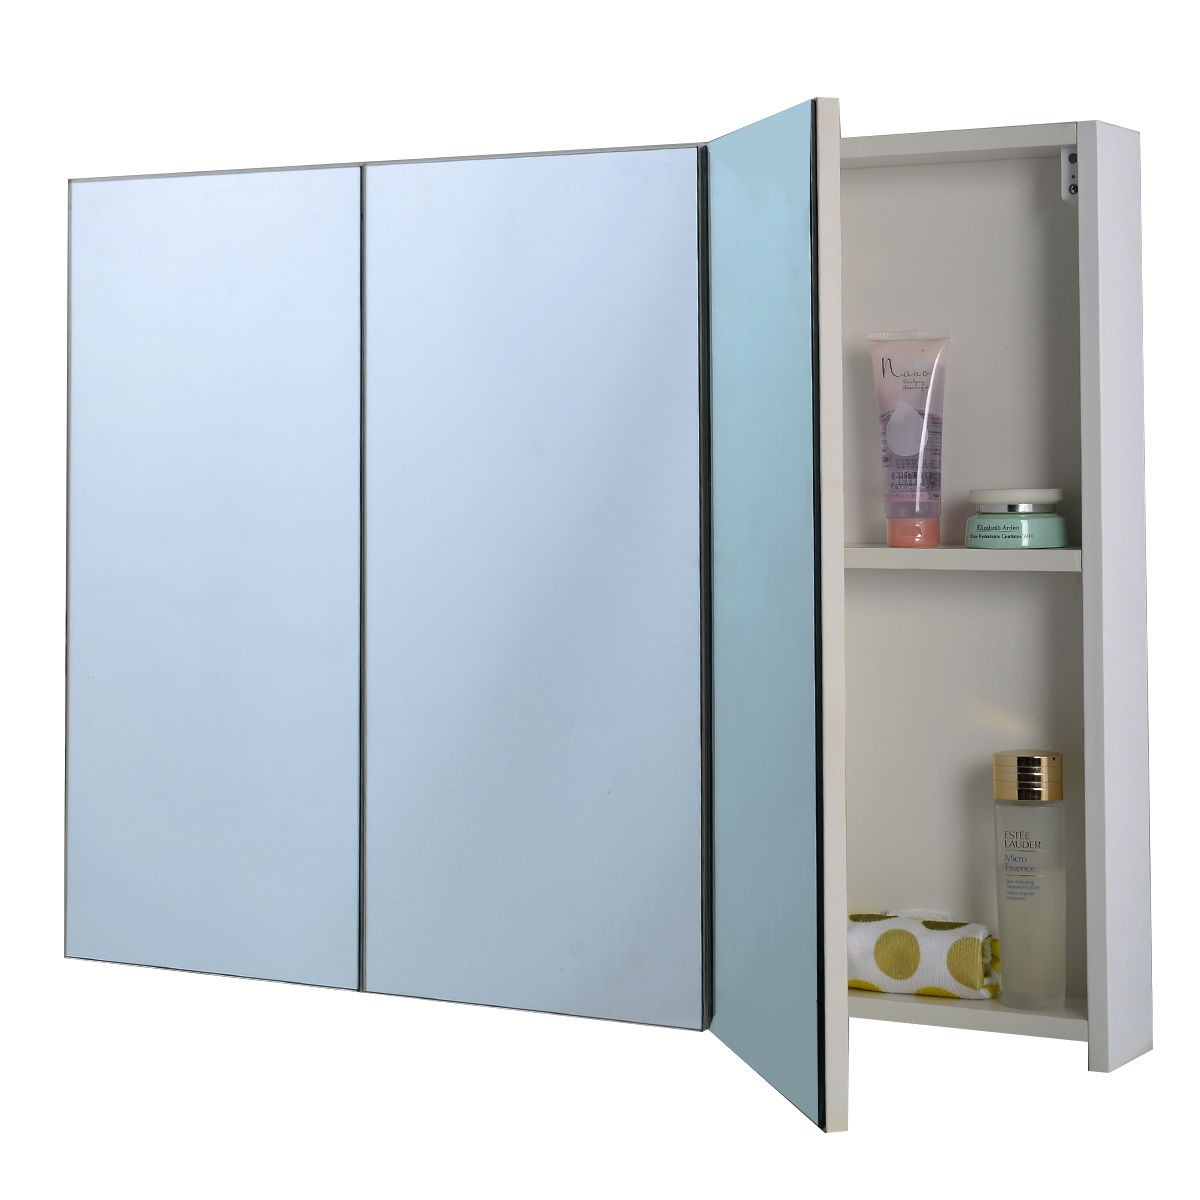 3 mirror door 36 20 wide wall mount mirrored bathroom - Bathroom mirrors and medicine cabinets ...